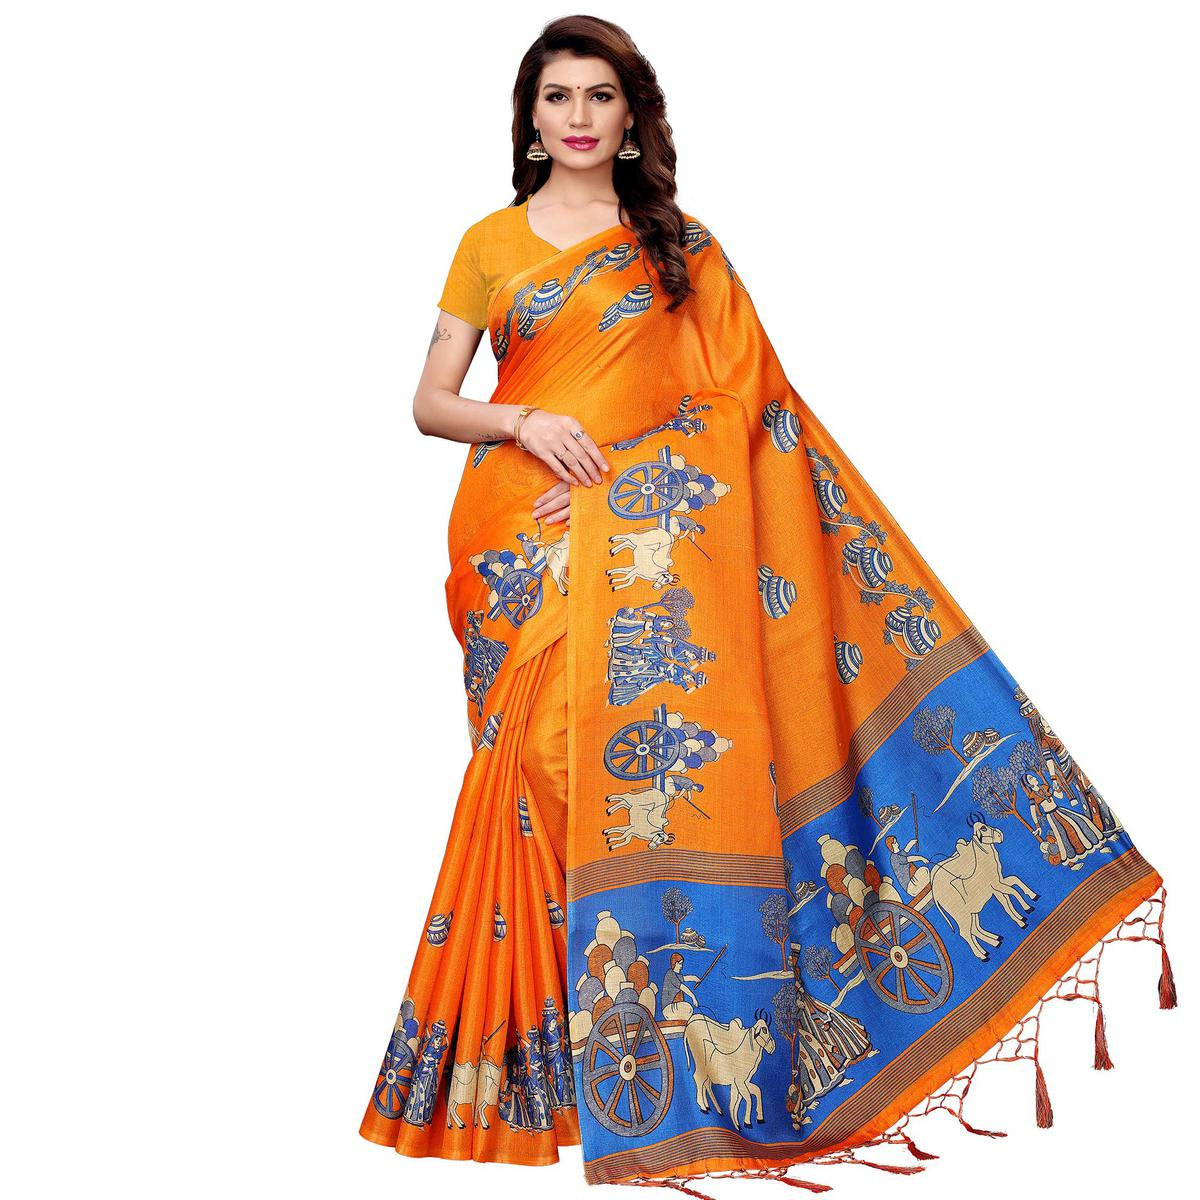 Mesmerising Orange Colored Festive Wear Printed Art Silk Saree